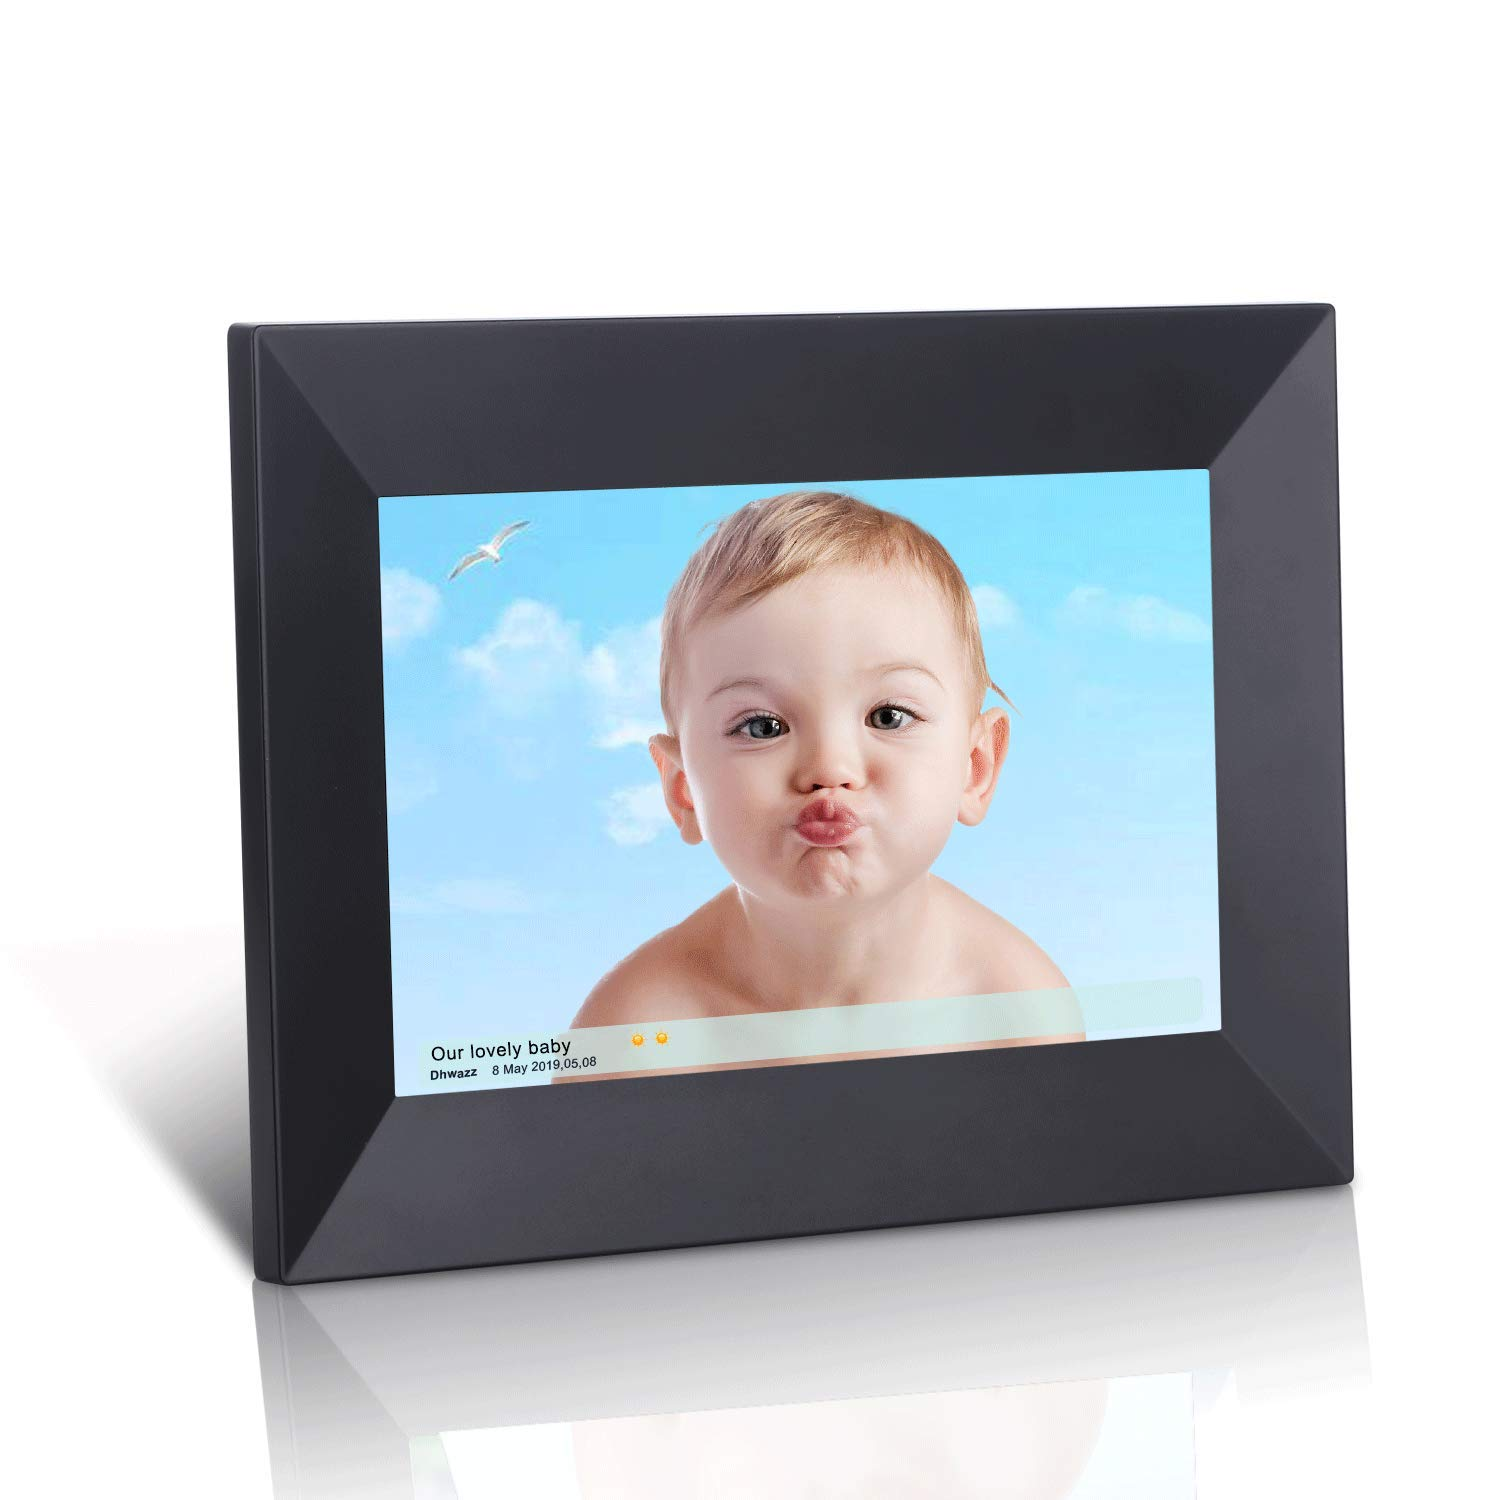 Dhwazz 8 Inch WiFi Digital Photo Frame, IPS Electronic Digital Frame with LCD Touch Screen, 8GB Internal Storage, Wall-Mountable, Display and Share Photos Instantly via Mobile APP by Dhwazz